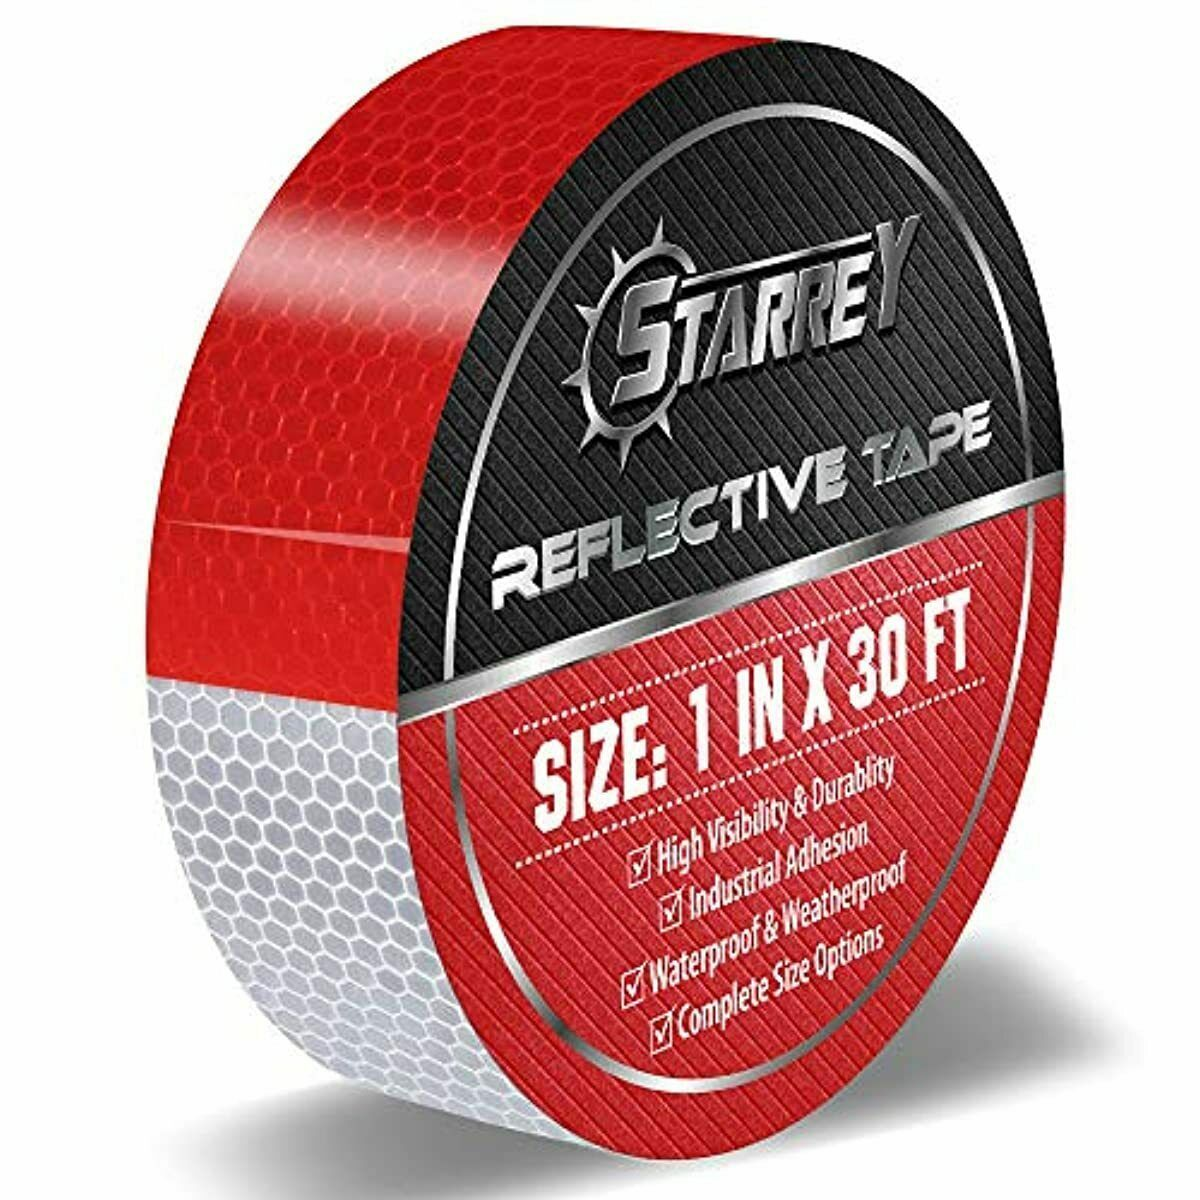 Starrey Reflective Tape Red White 1 IN X 30 FT Waterproof Se